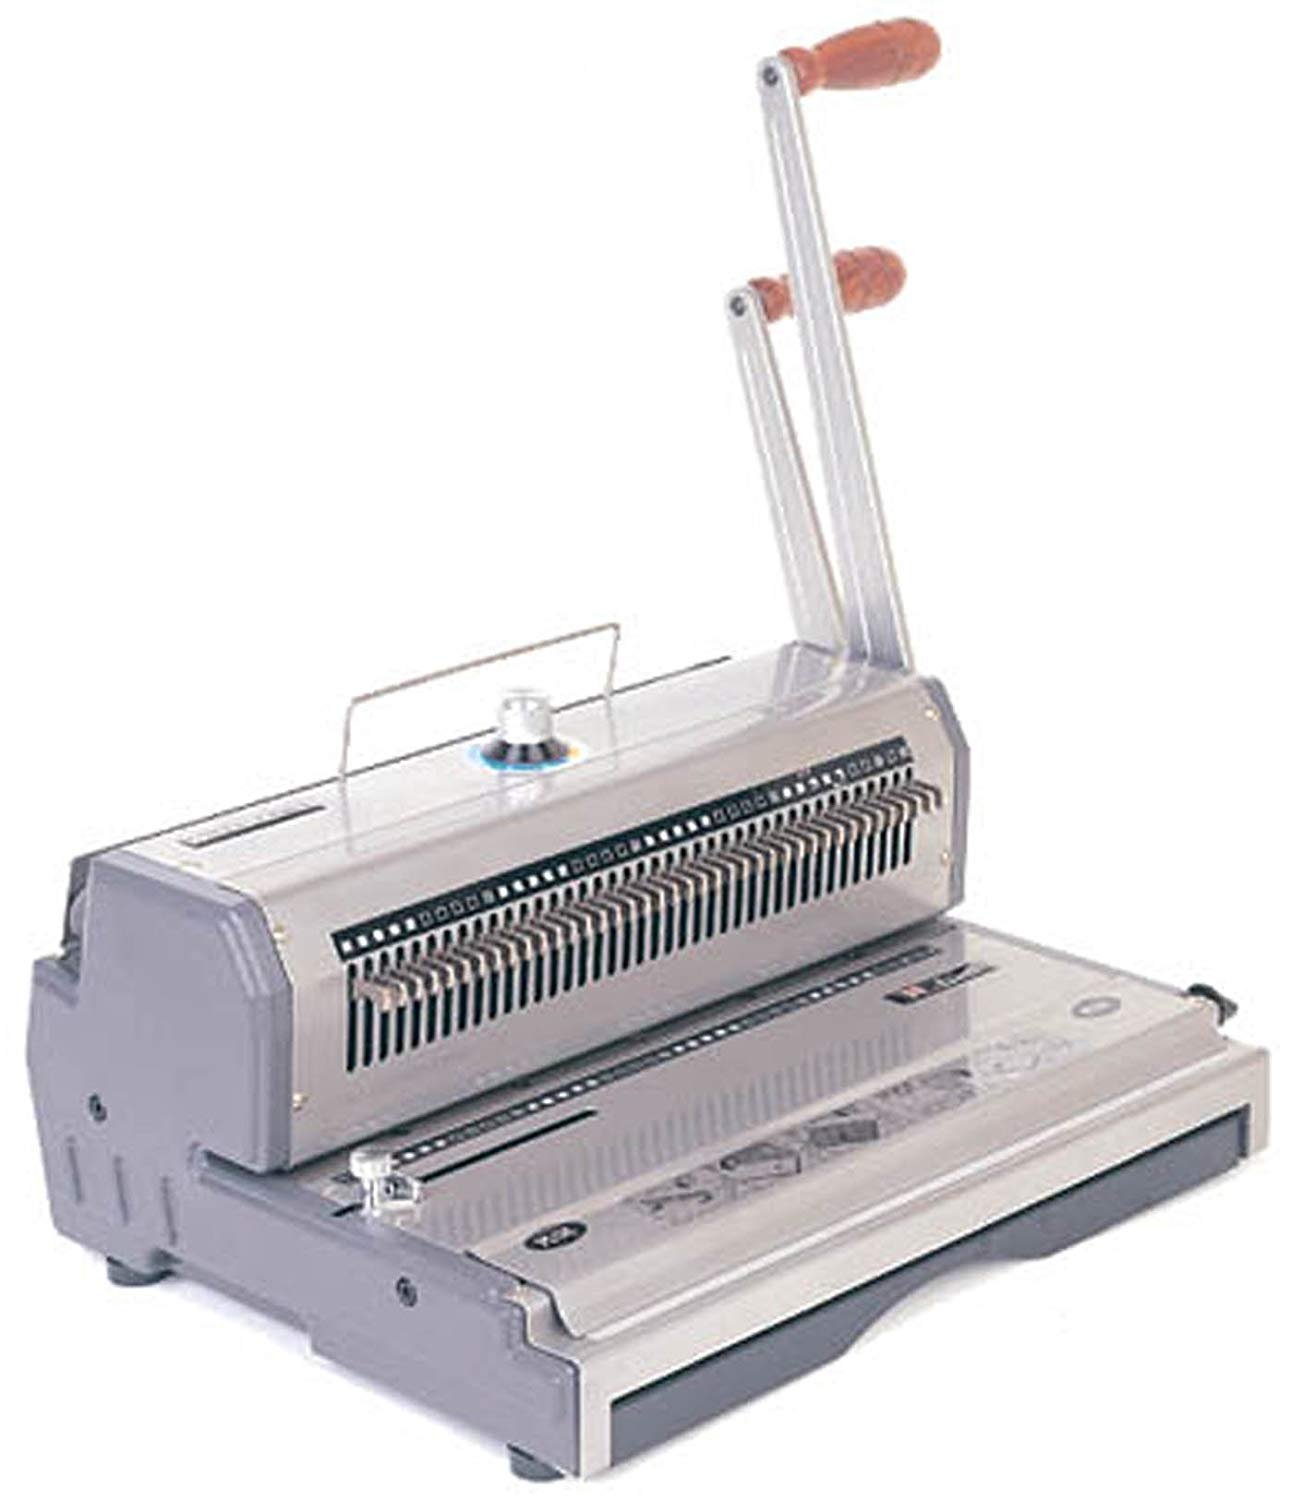 High Quality Roll Laminator Machine for All Kind of Laminating Jobs